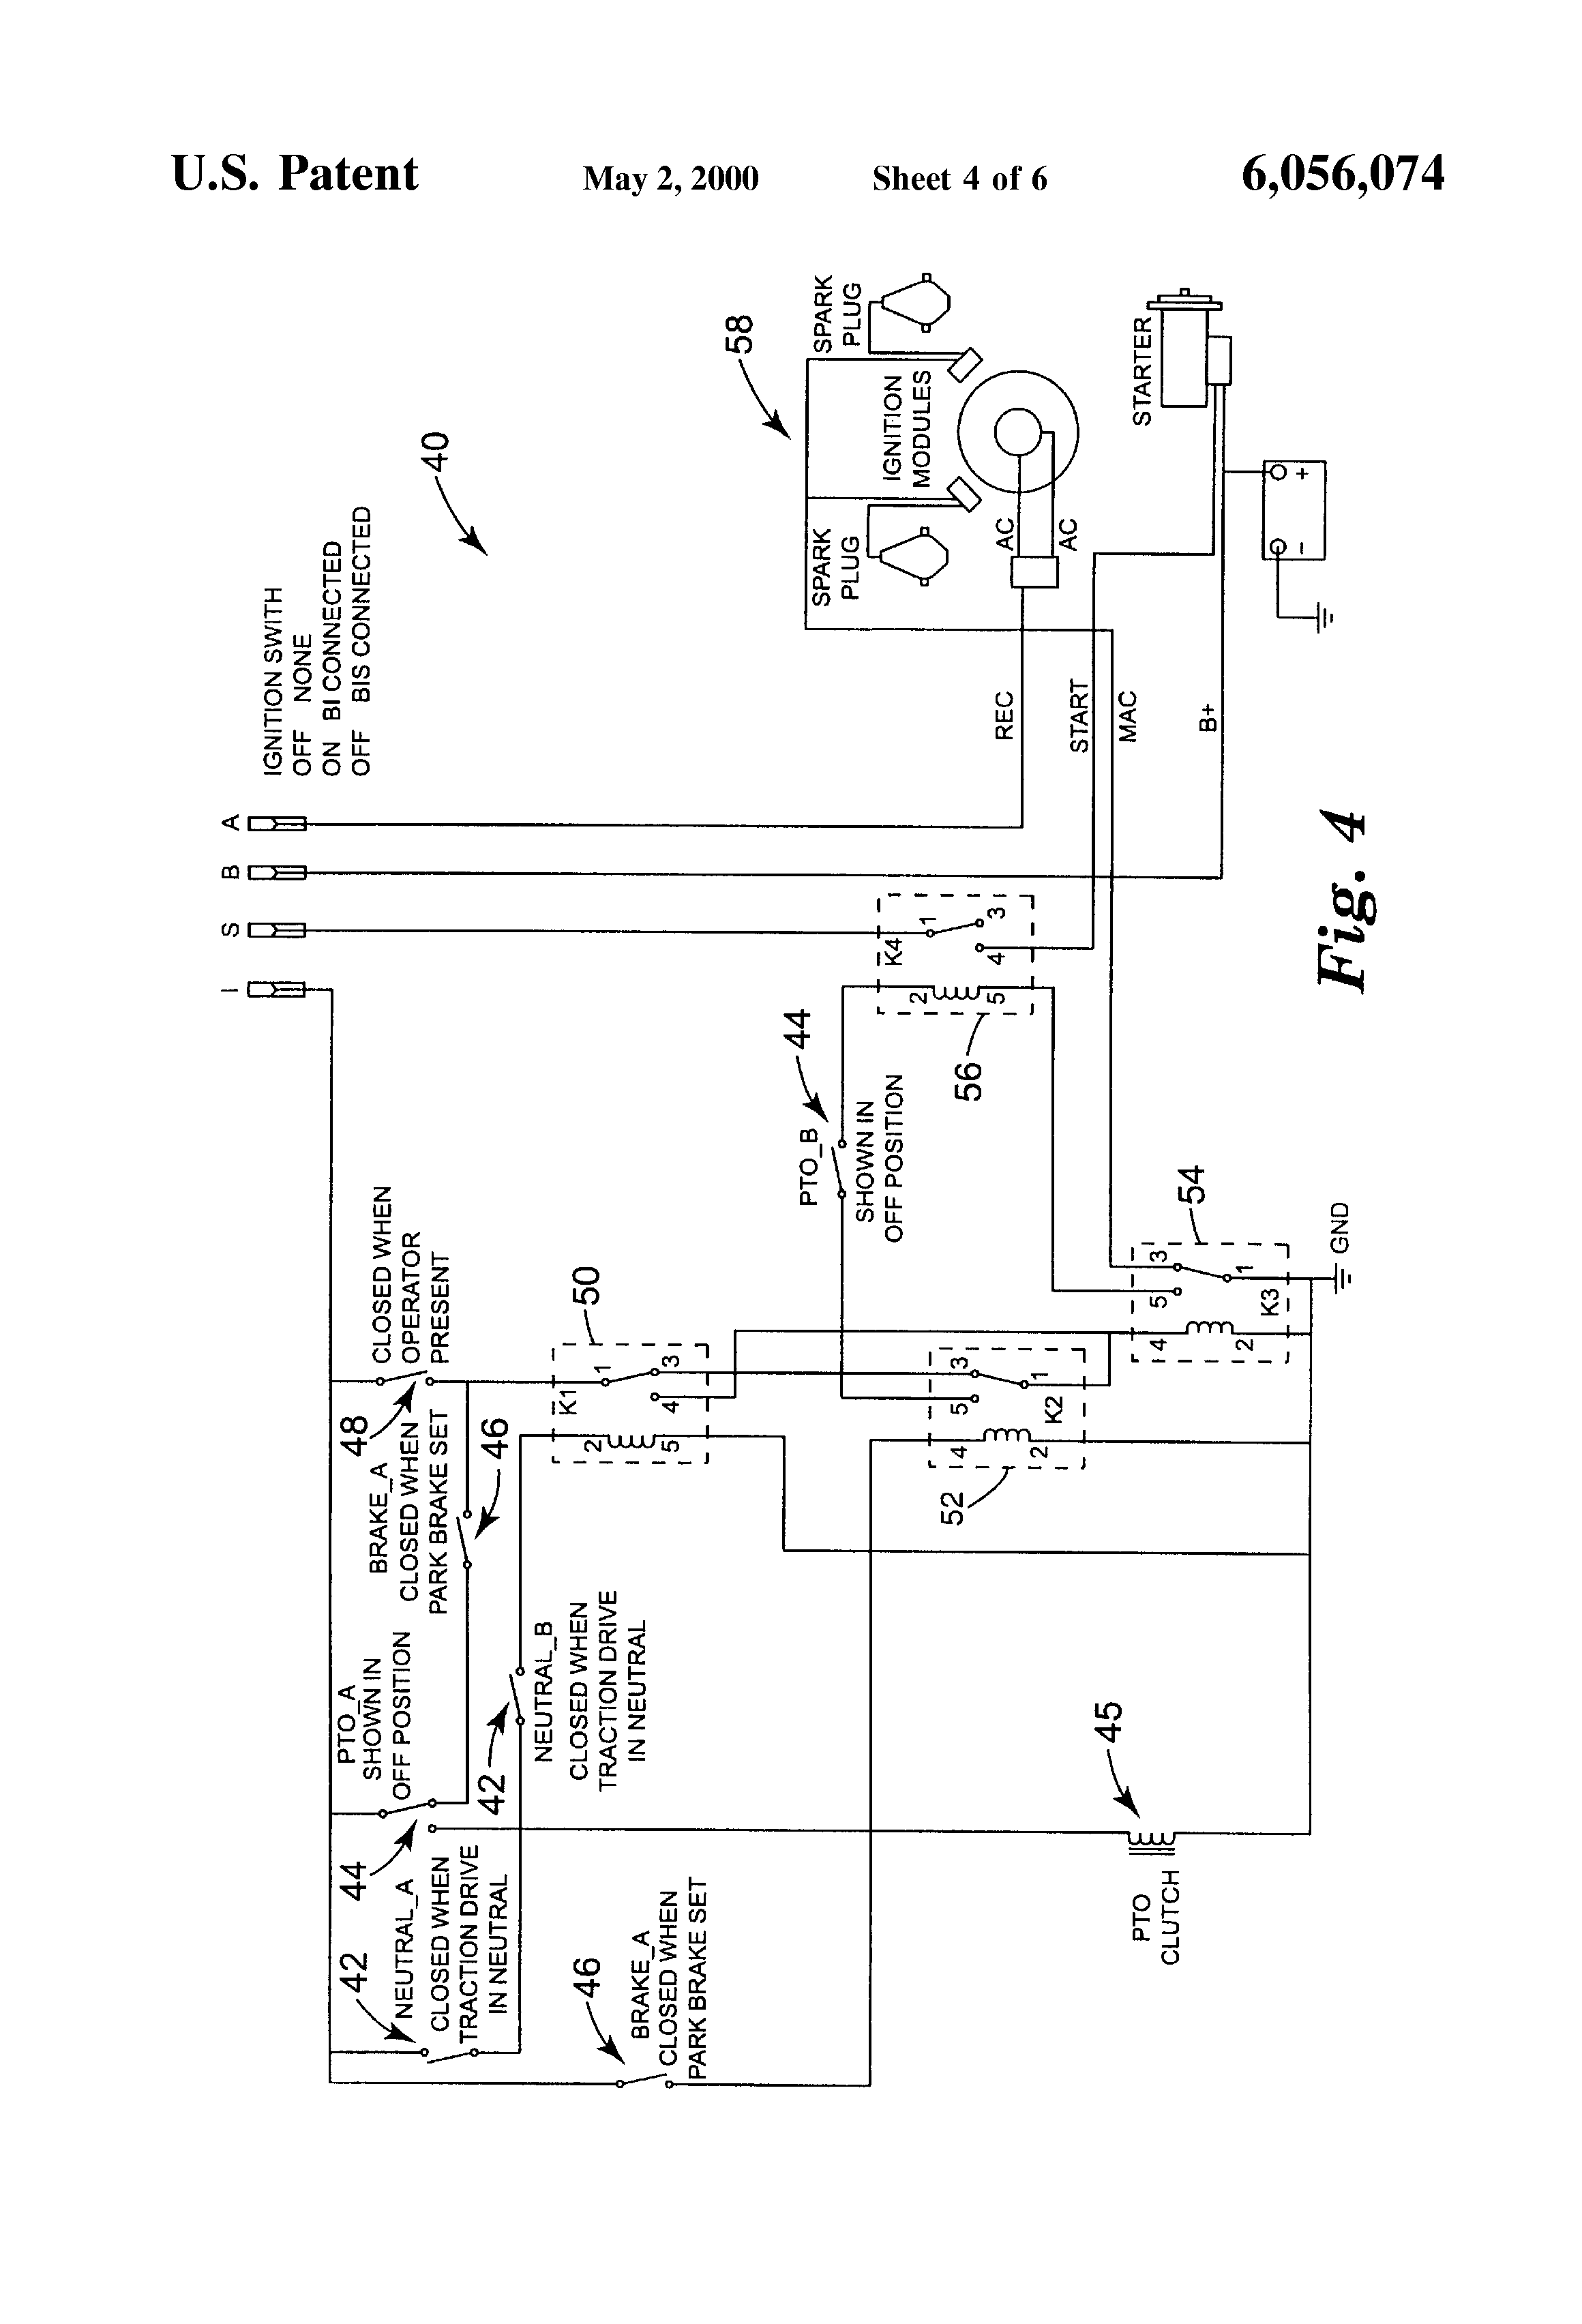 US6056074 4 patent us6056074 mower with non contact drive system interlock toro z master wiring diagram at bayanpartner.co